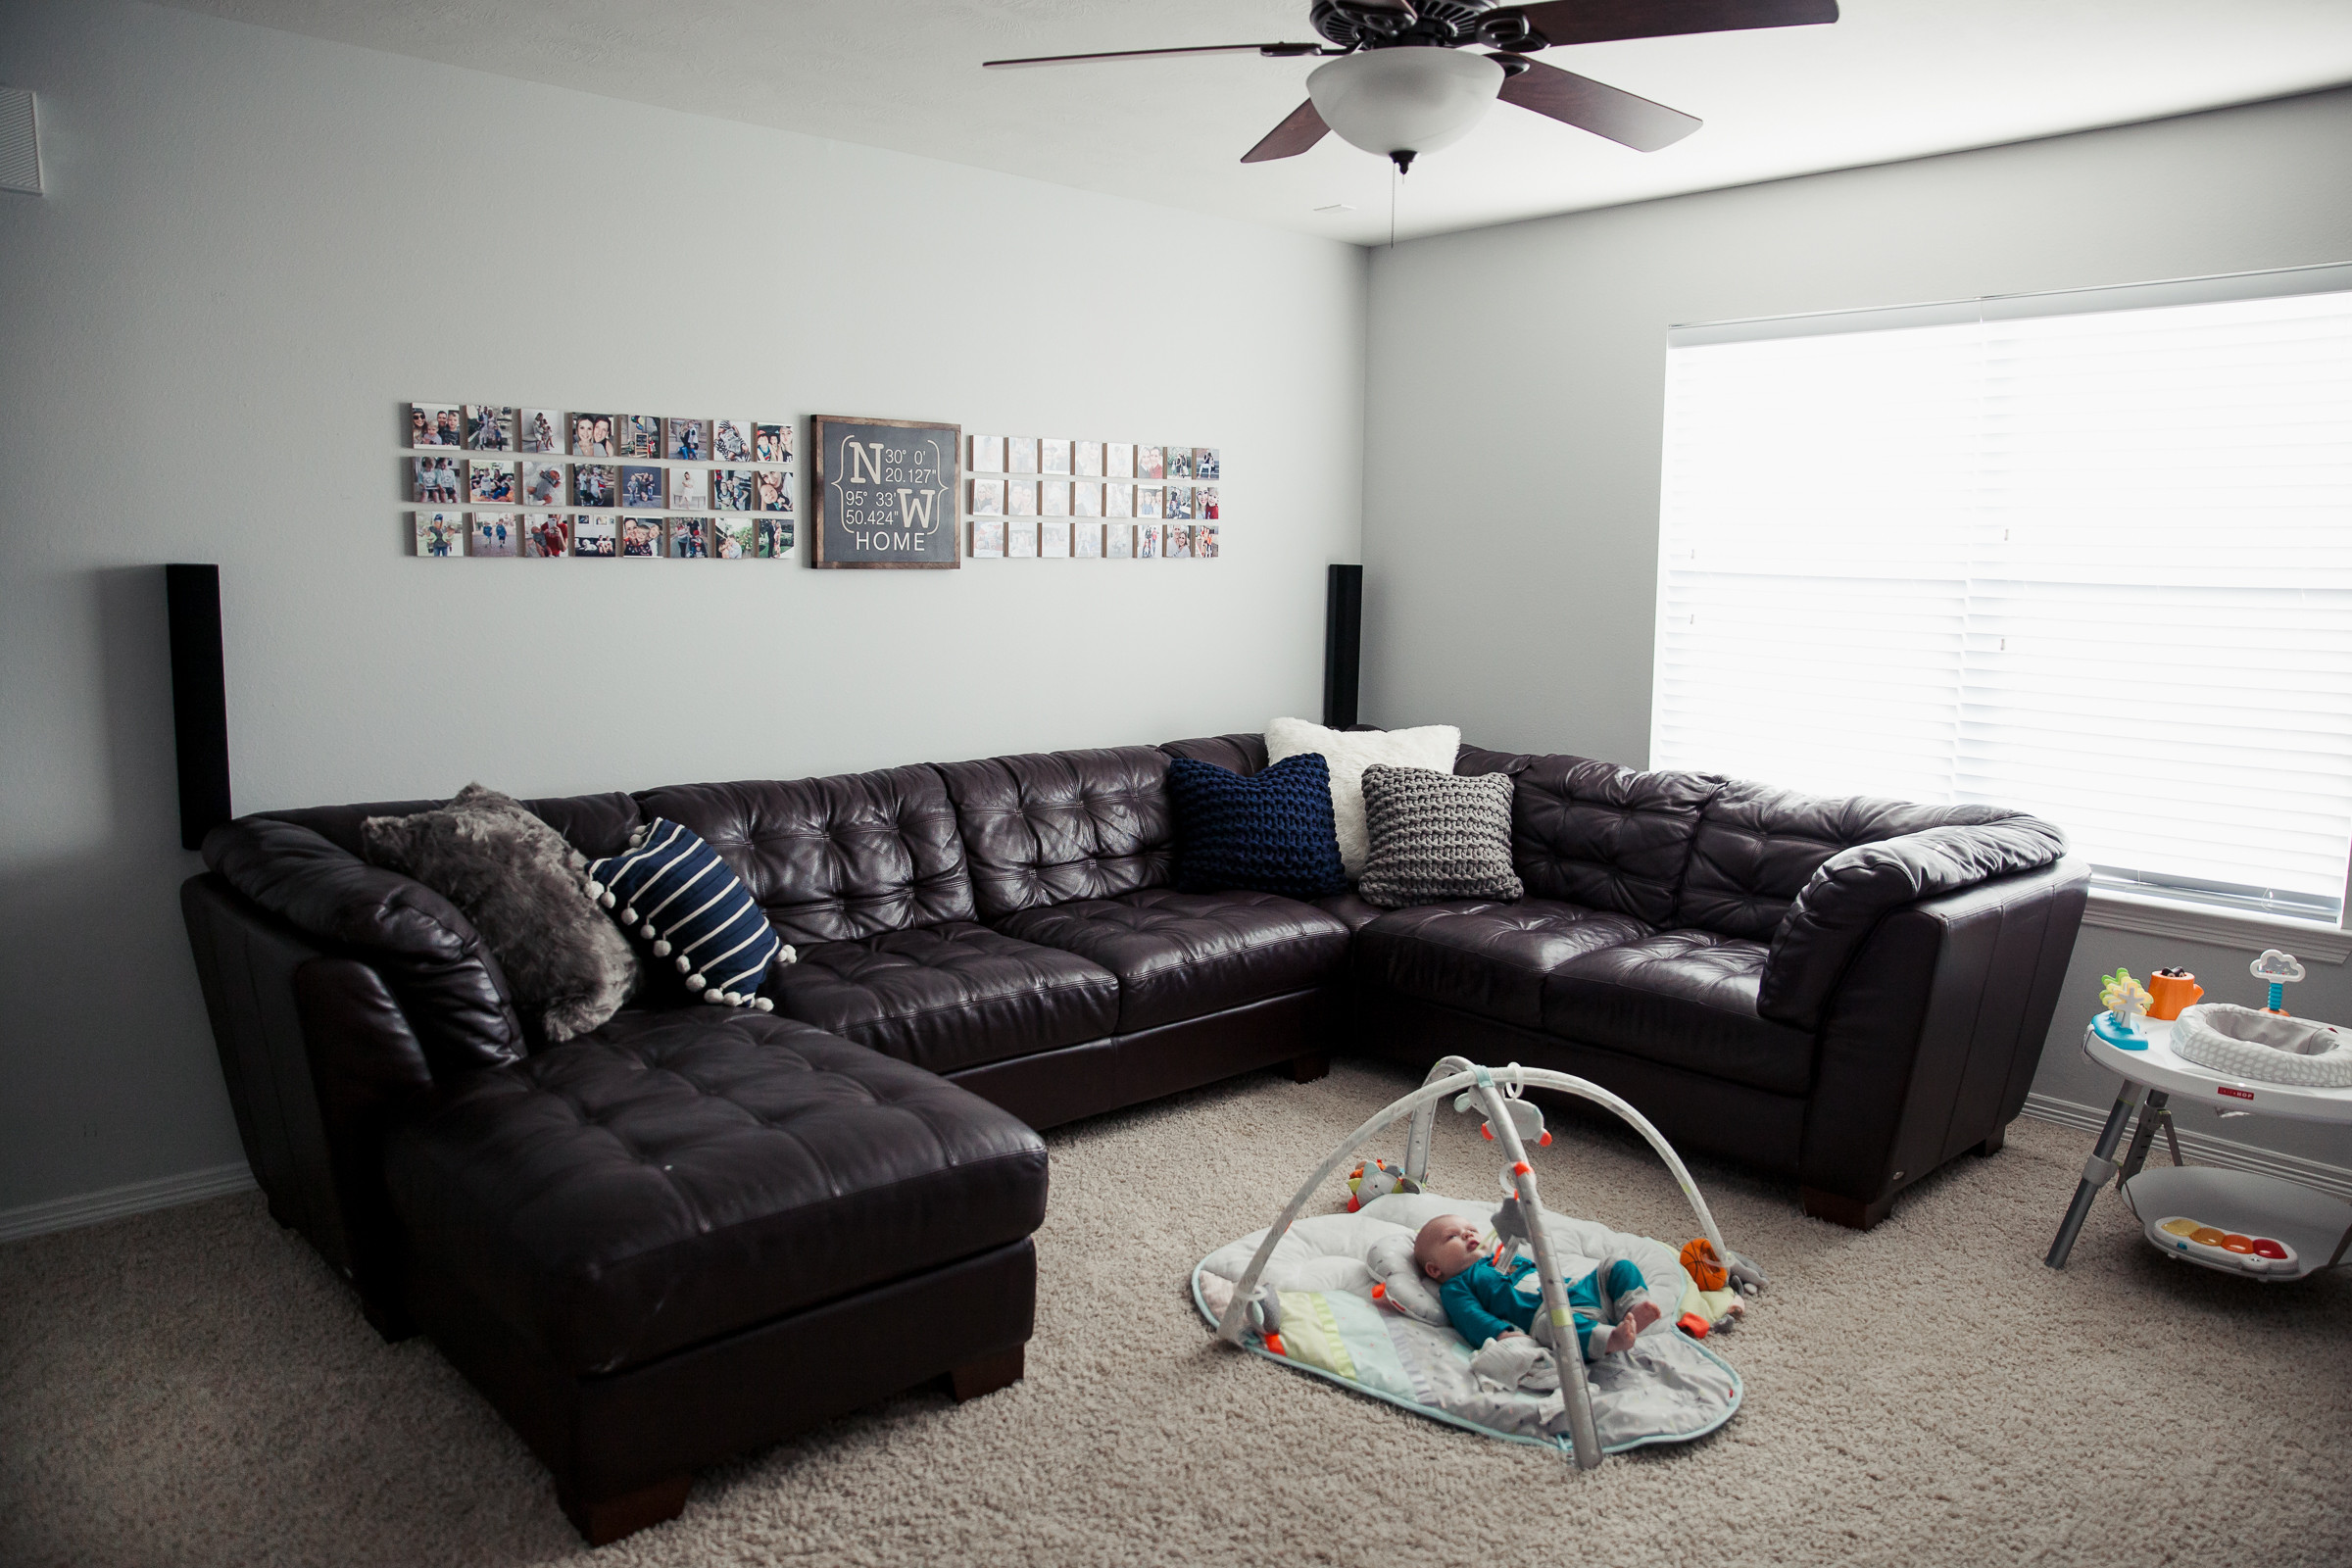 Kids Games Room Ideas  Simple Game Room Ideas for The Home Uptown with Elly Brown